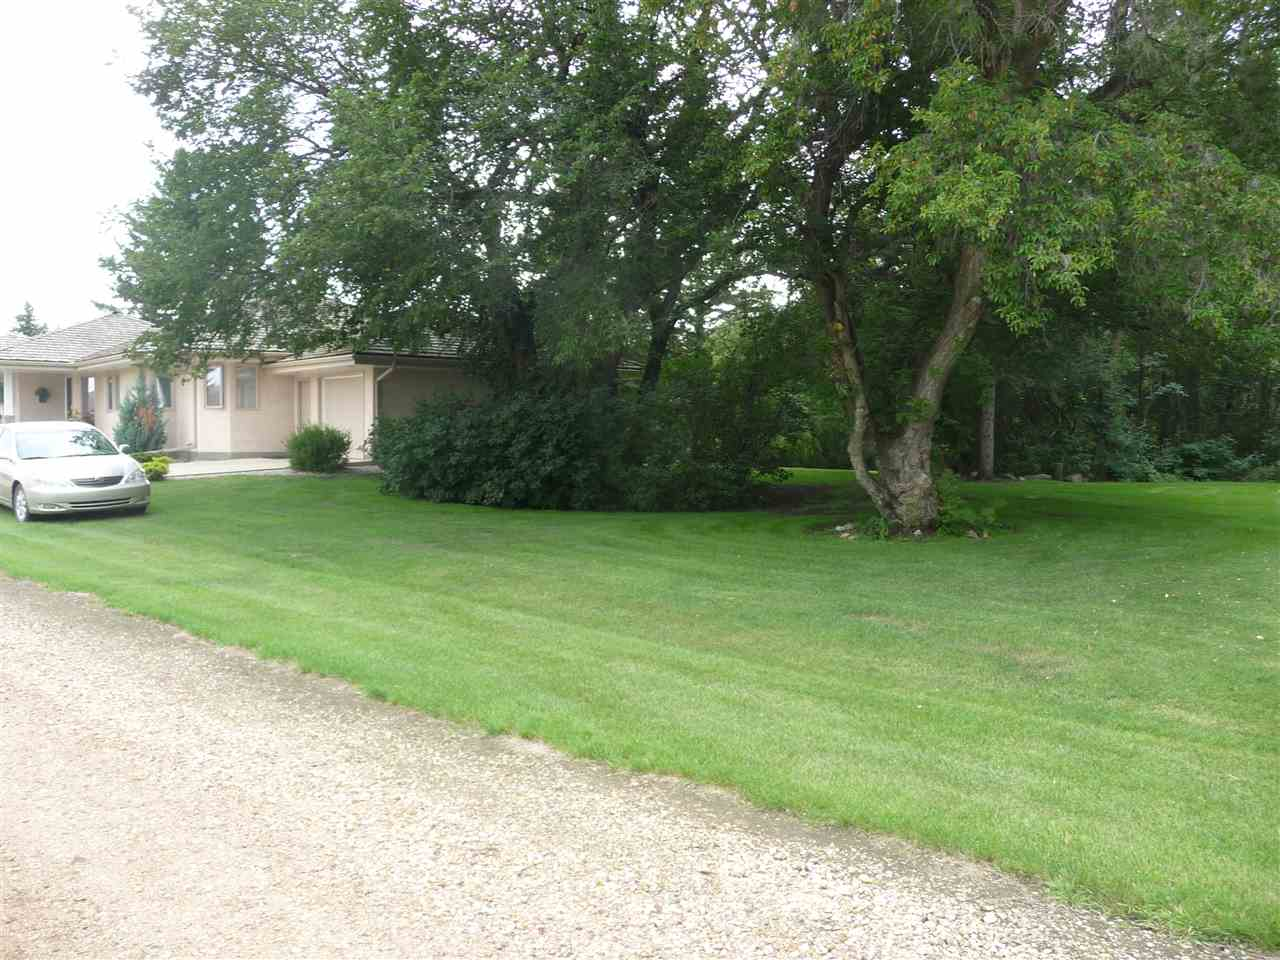 Photo 30: 54527 RGE RD 243: Rural Sturgeon County House for sale : MLS(r) # E4033494